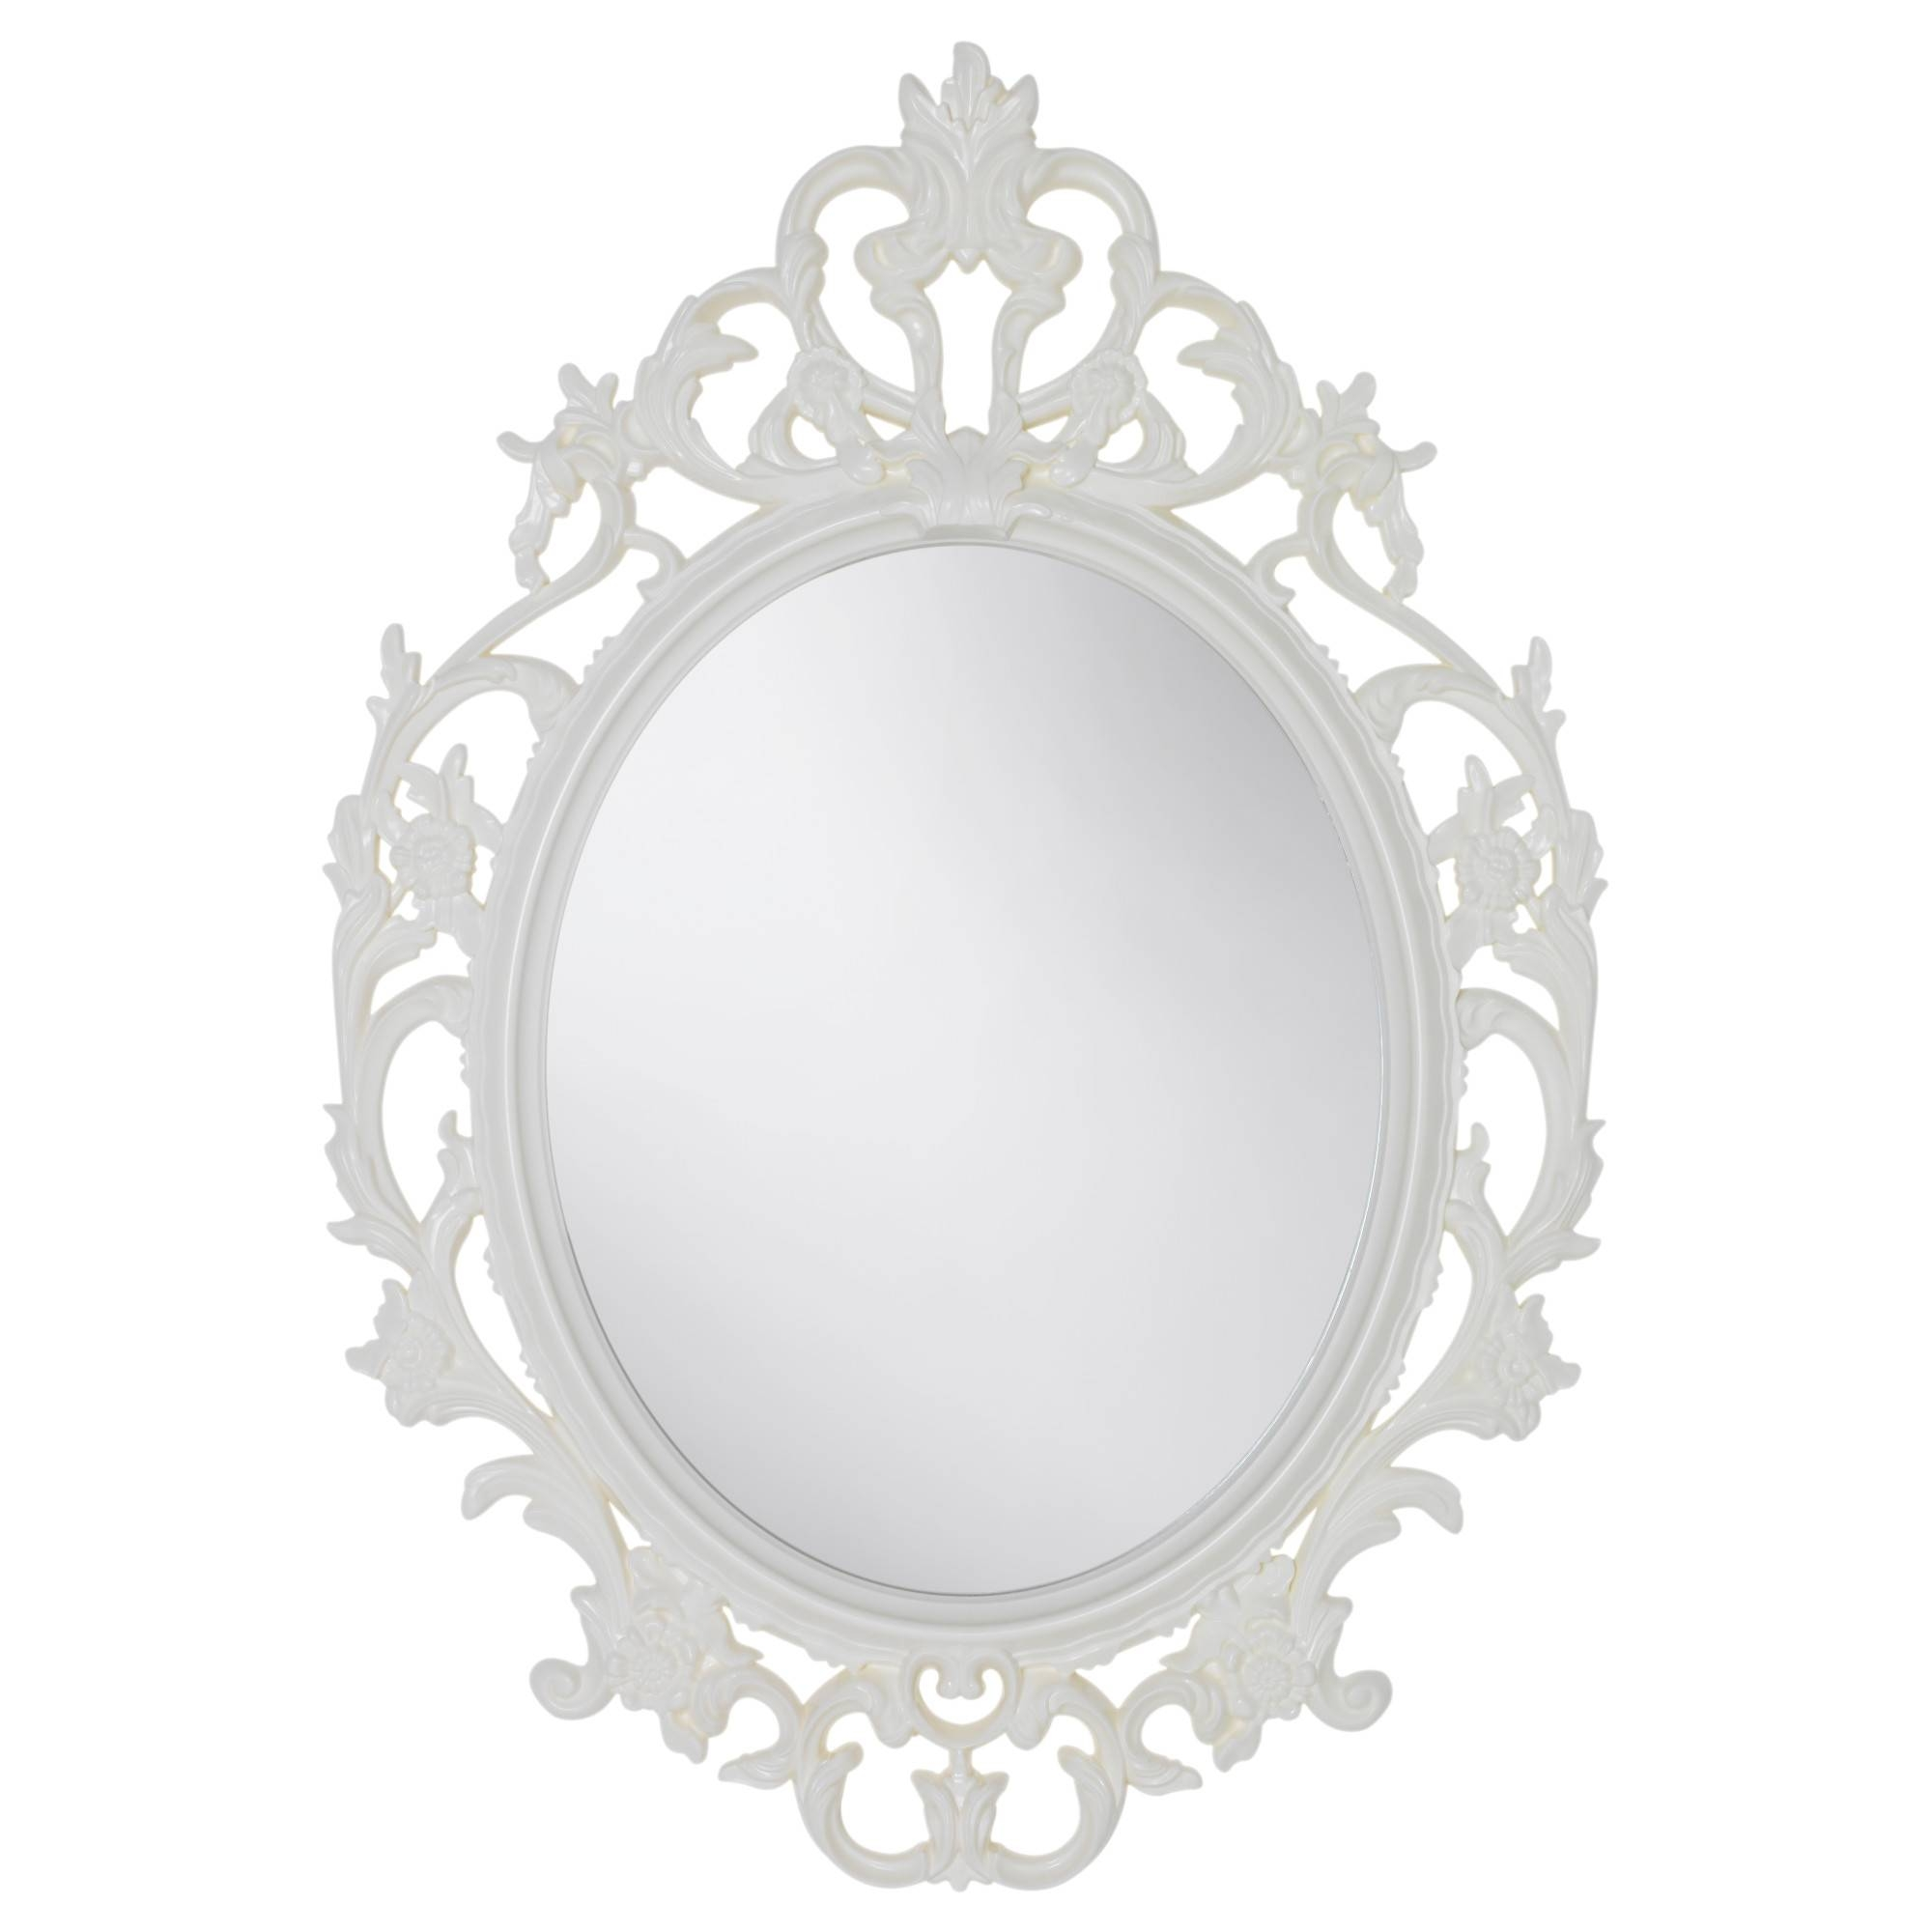 Round Mirrors - Mirrors - Ikea pertaining to White Oval Mirrors (Image 17 of 25)